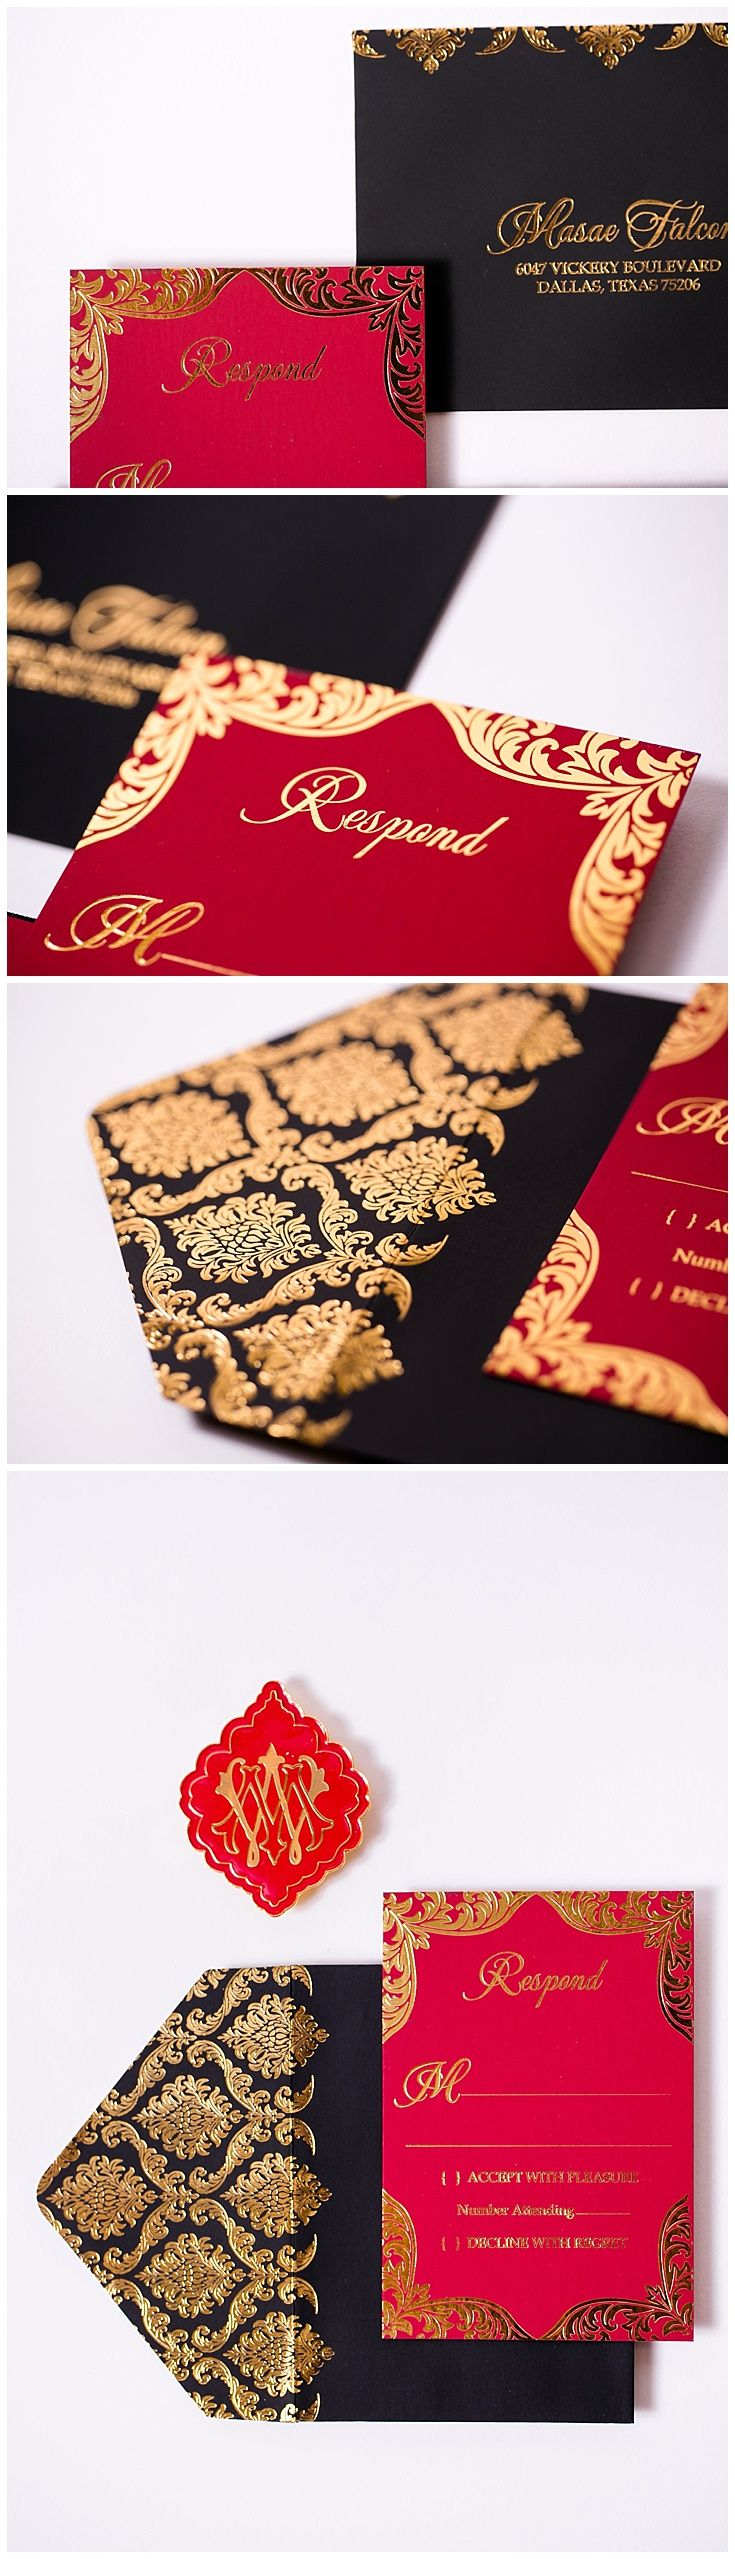 Velvet Wedding Invitations | BLACK INVITATIONS | Pinterest | Red ...